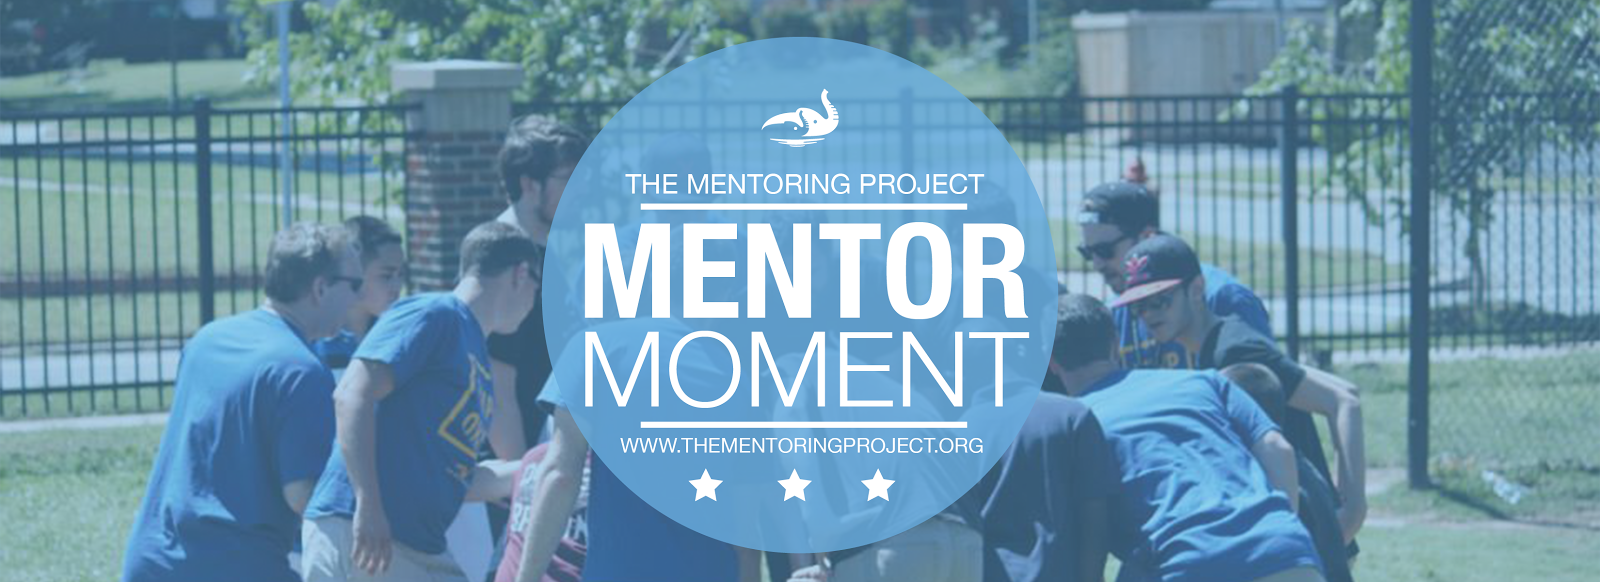 MENTOR MOMENT BANNER (1).png